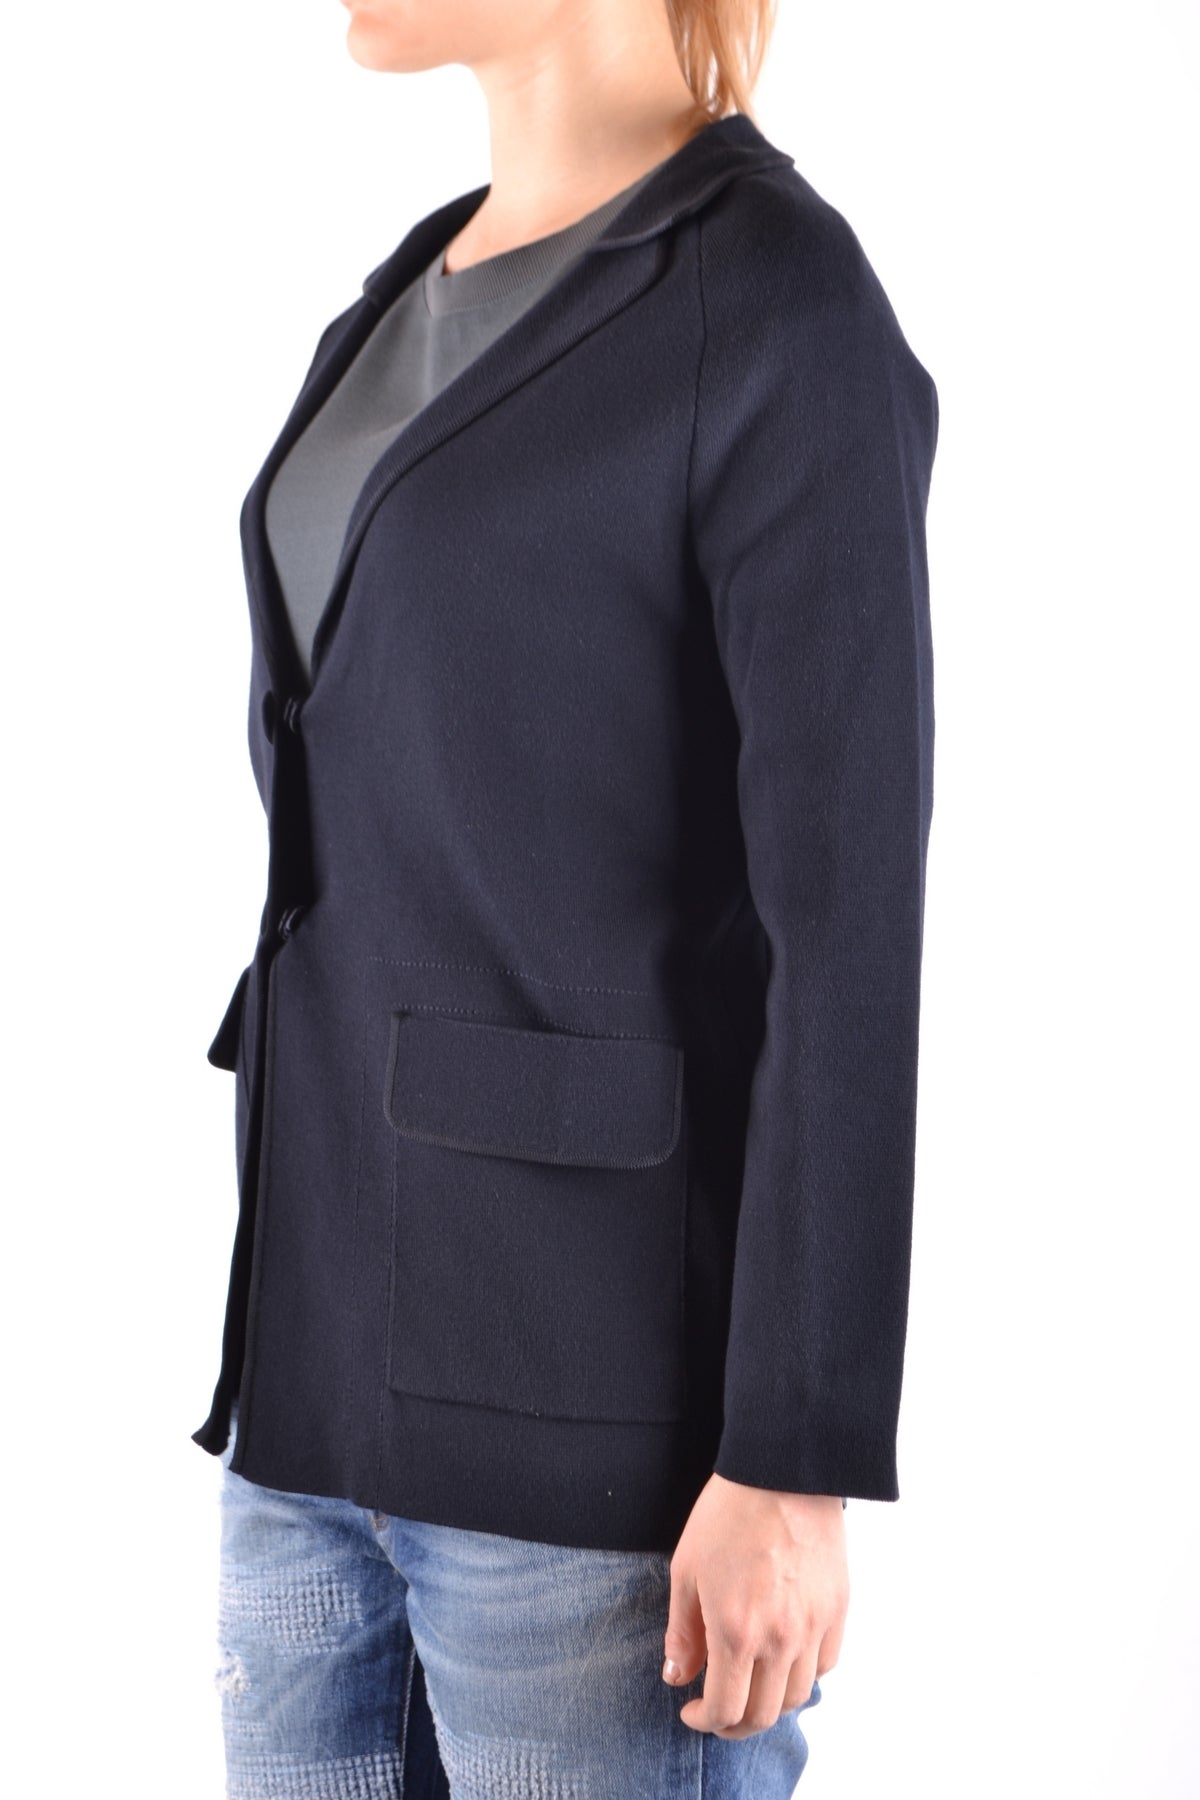 Jacket Armani Collezioni-Jacket - WOMAN-Product Details Terms: New With LabelYear: 2017Main Color: BlueGender: WomanMade In: MoldaviaSize: ItSeason: Spring / SummerClothing Type: JacketComposition: Cotton 60%, Viscose 40%-Keyomi-Sook